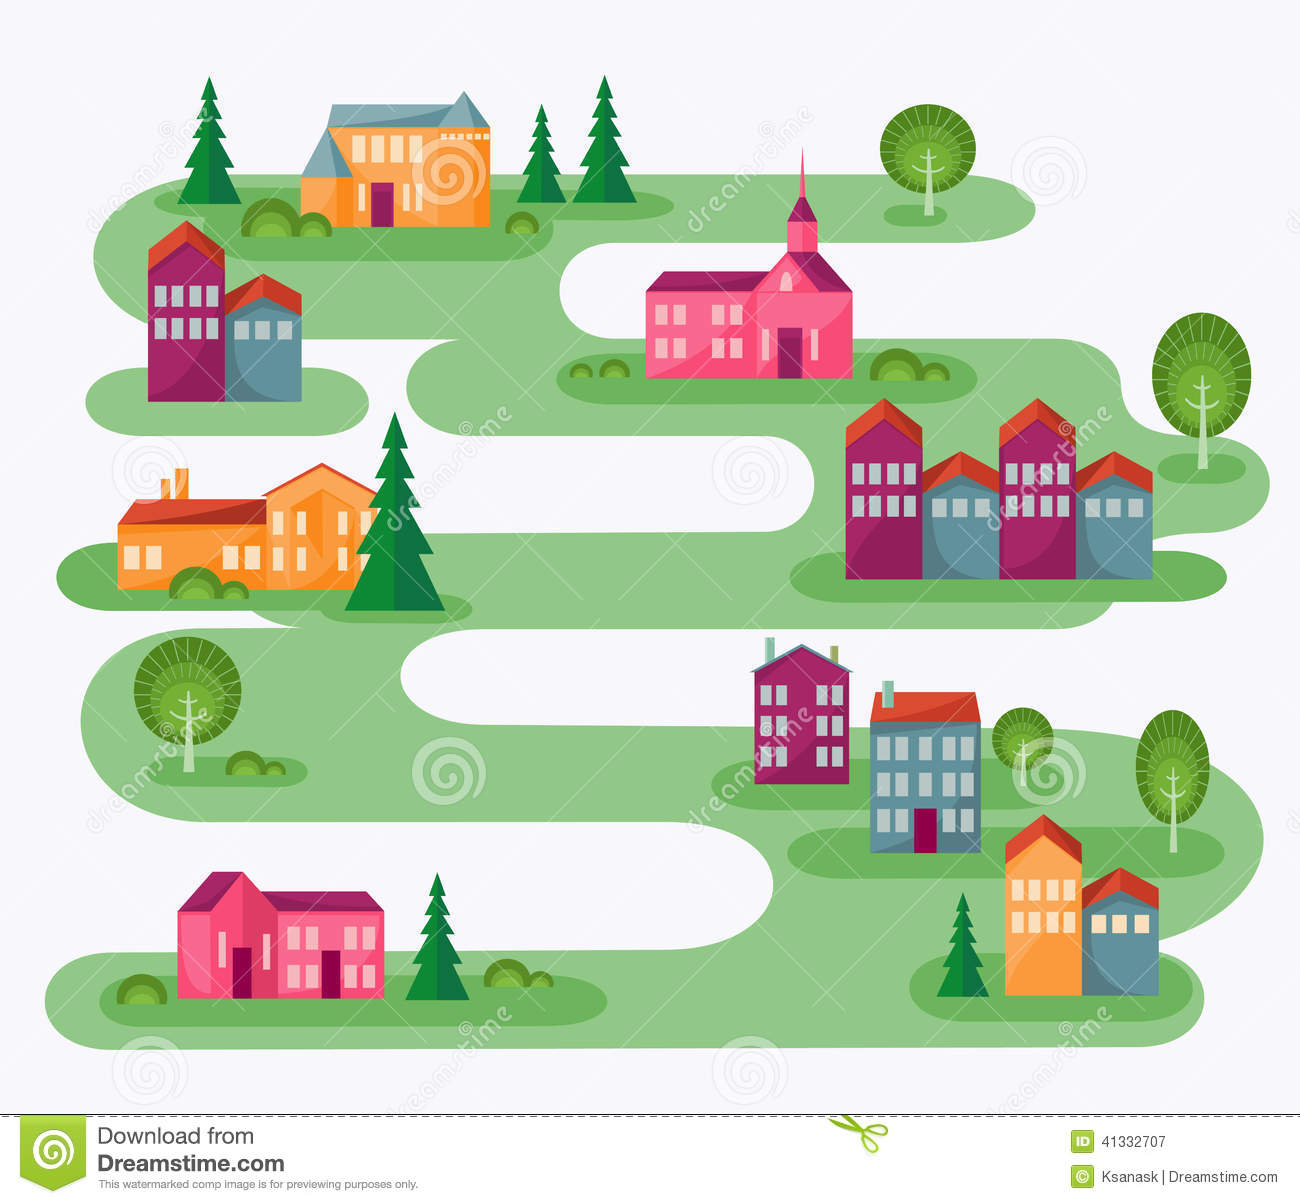 Town Landscape Vector Illustration: Small Town Stock Vector. Illustration Of Countryside